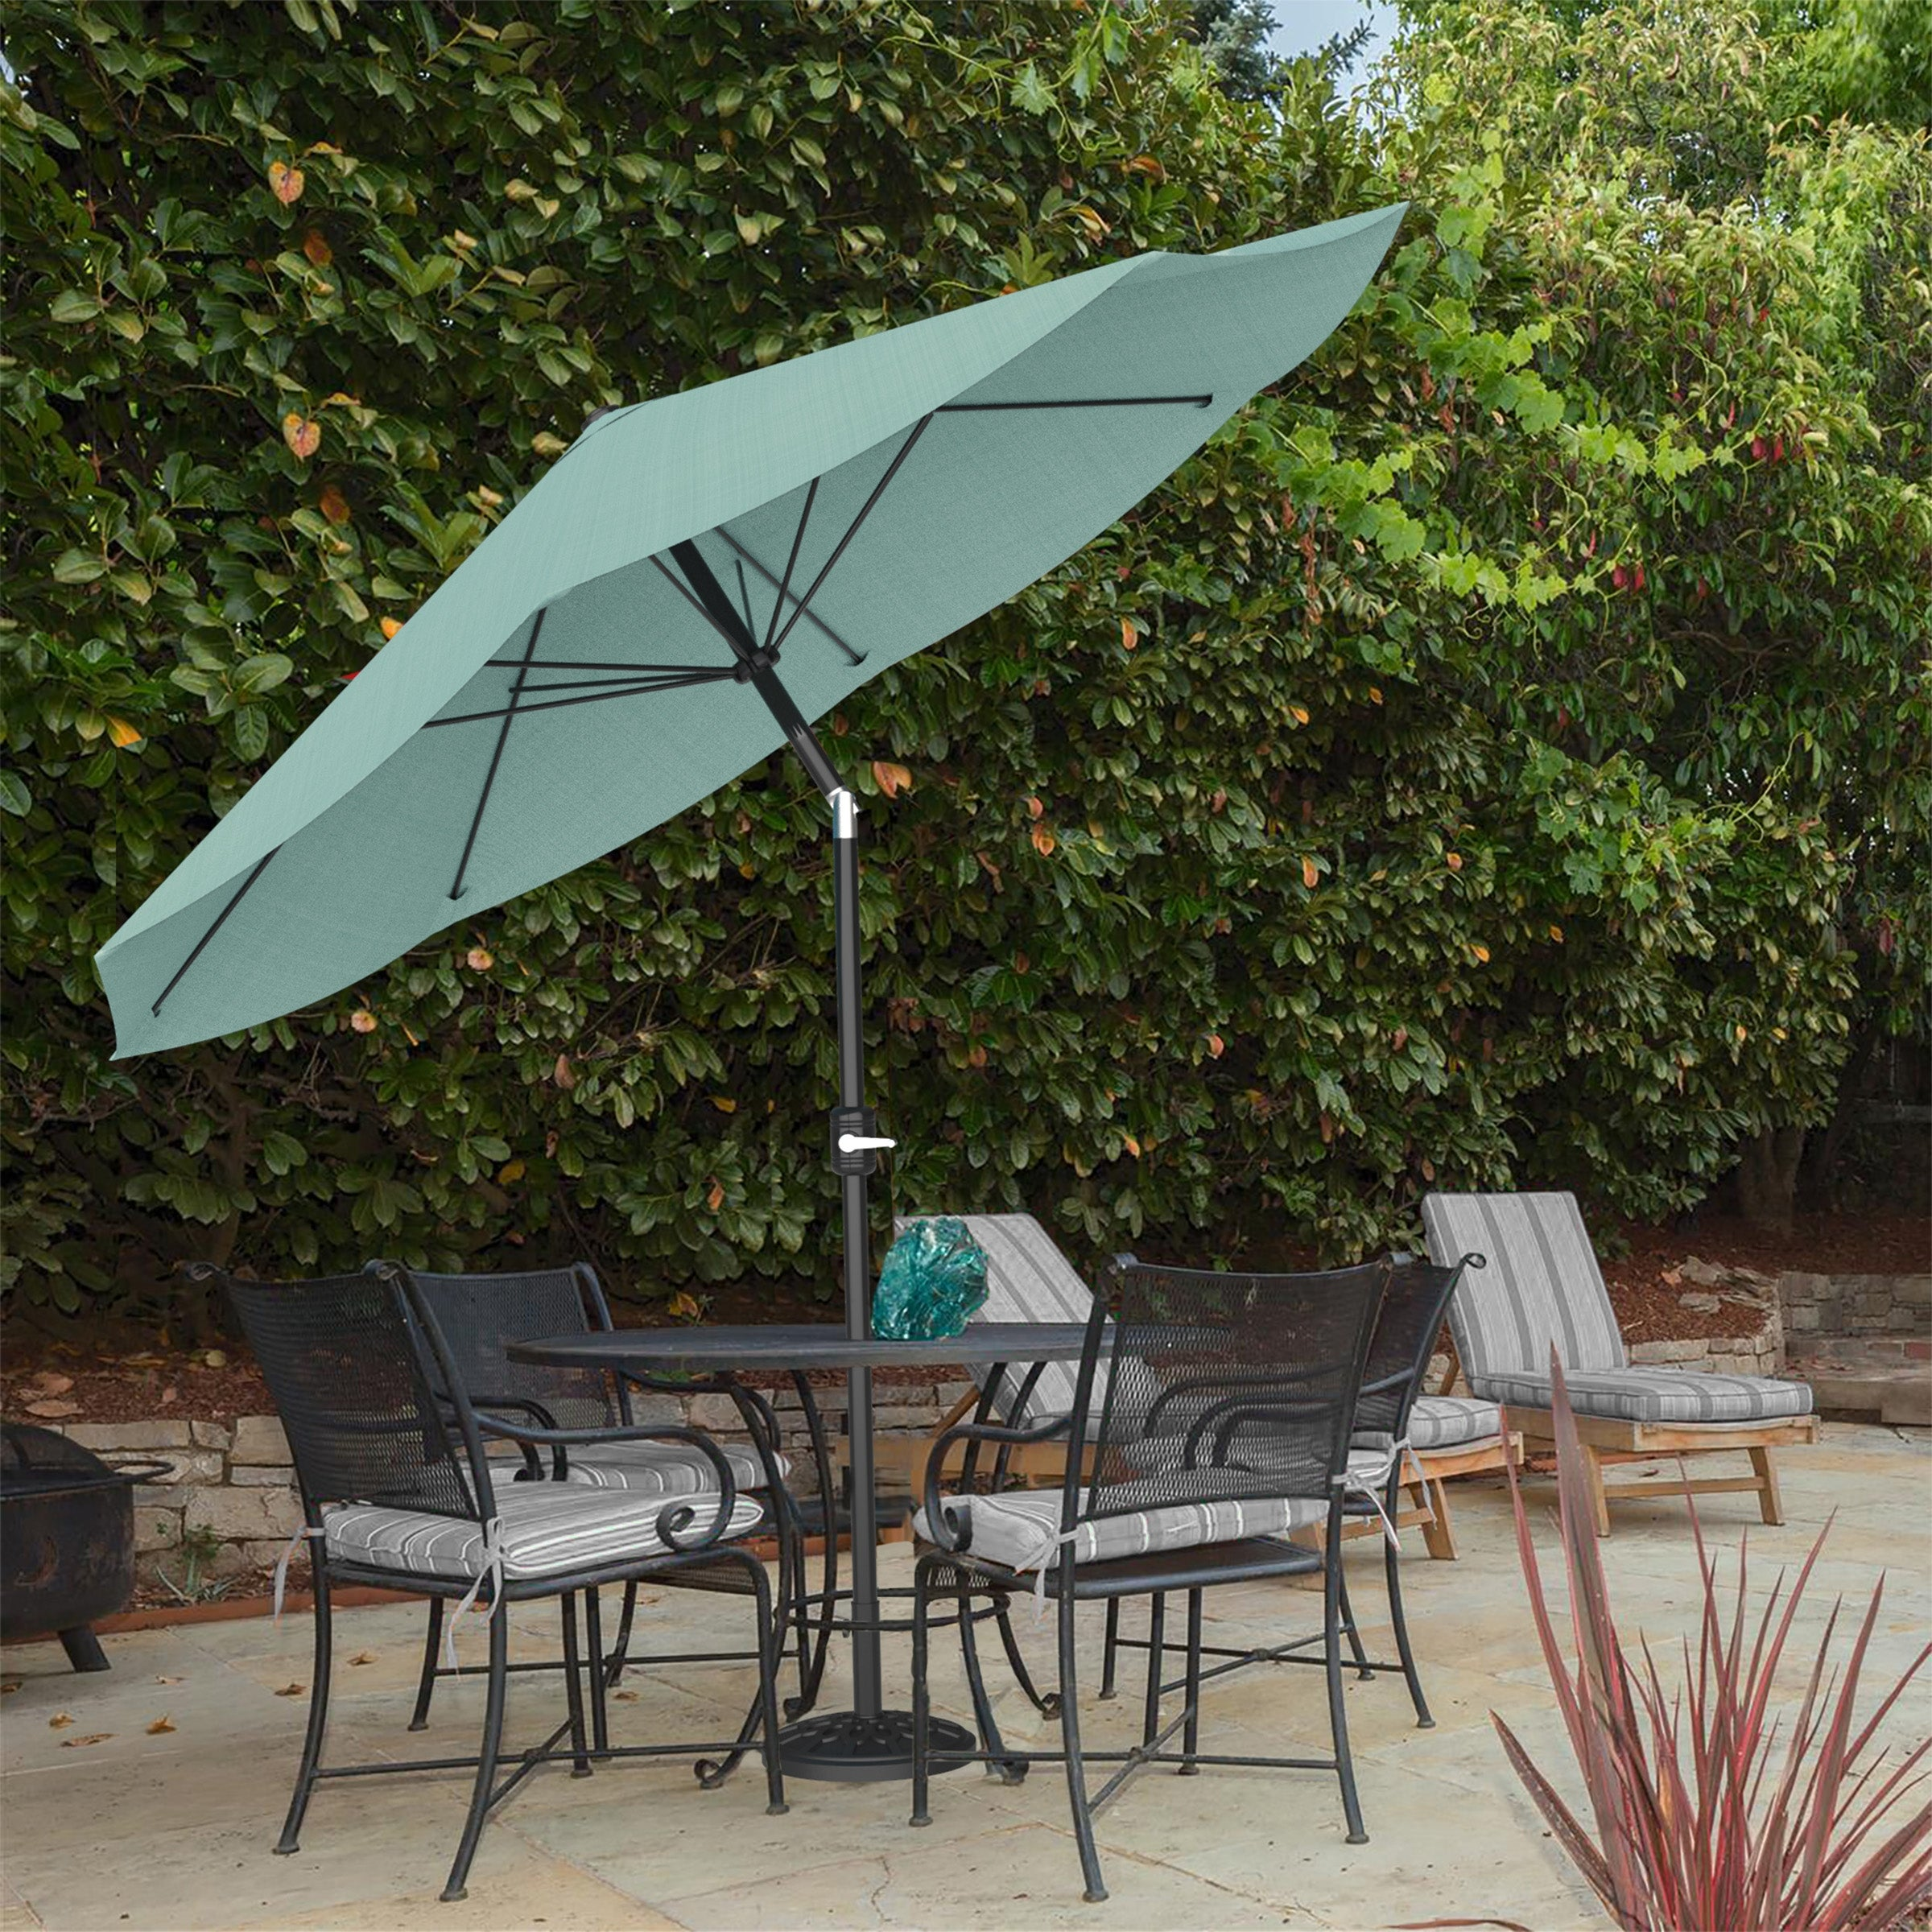 8ft Patio Umbrella with Auto Tilt by Pure Garden, Base Not Included